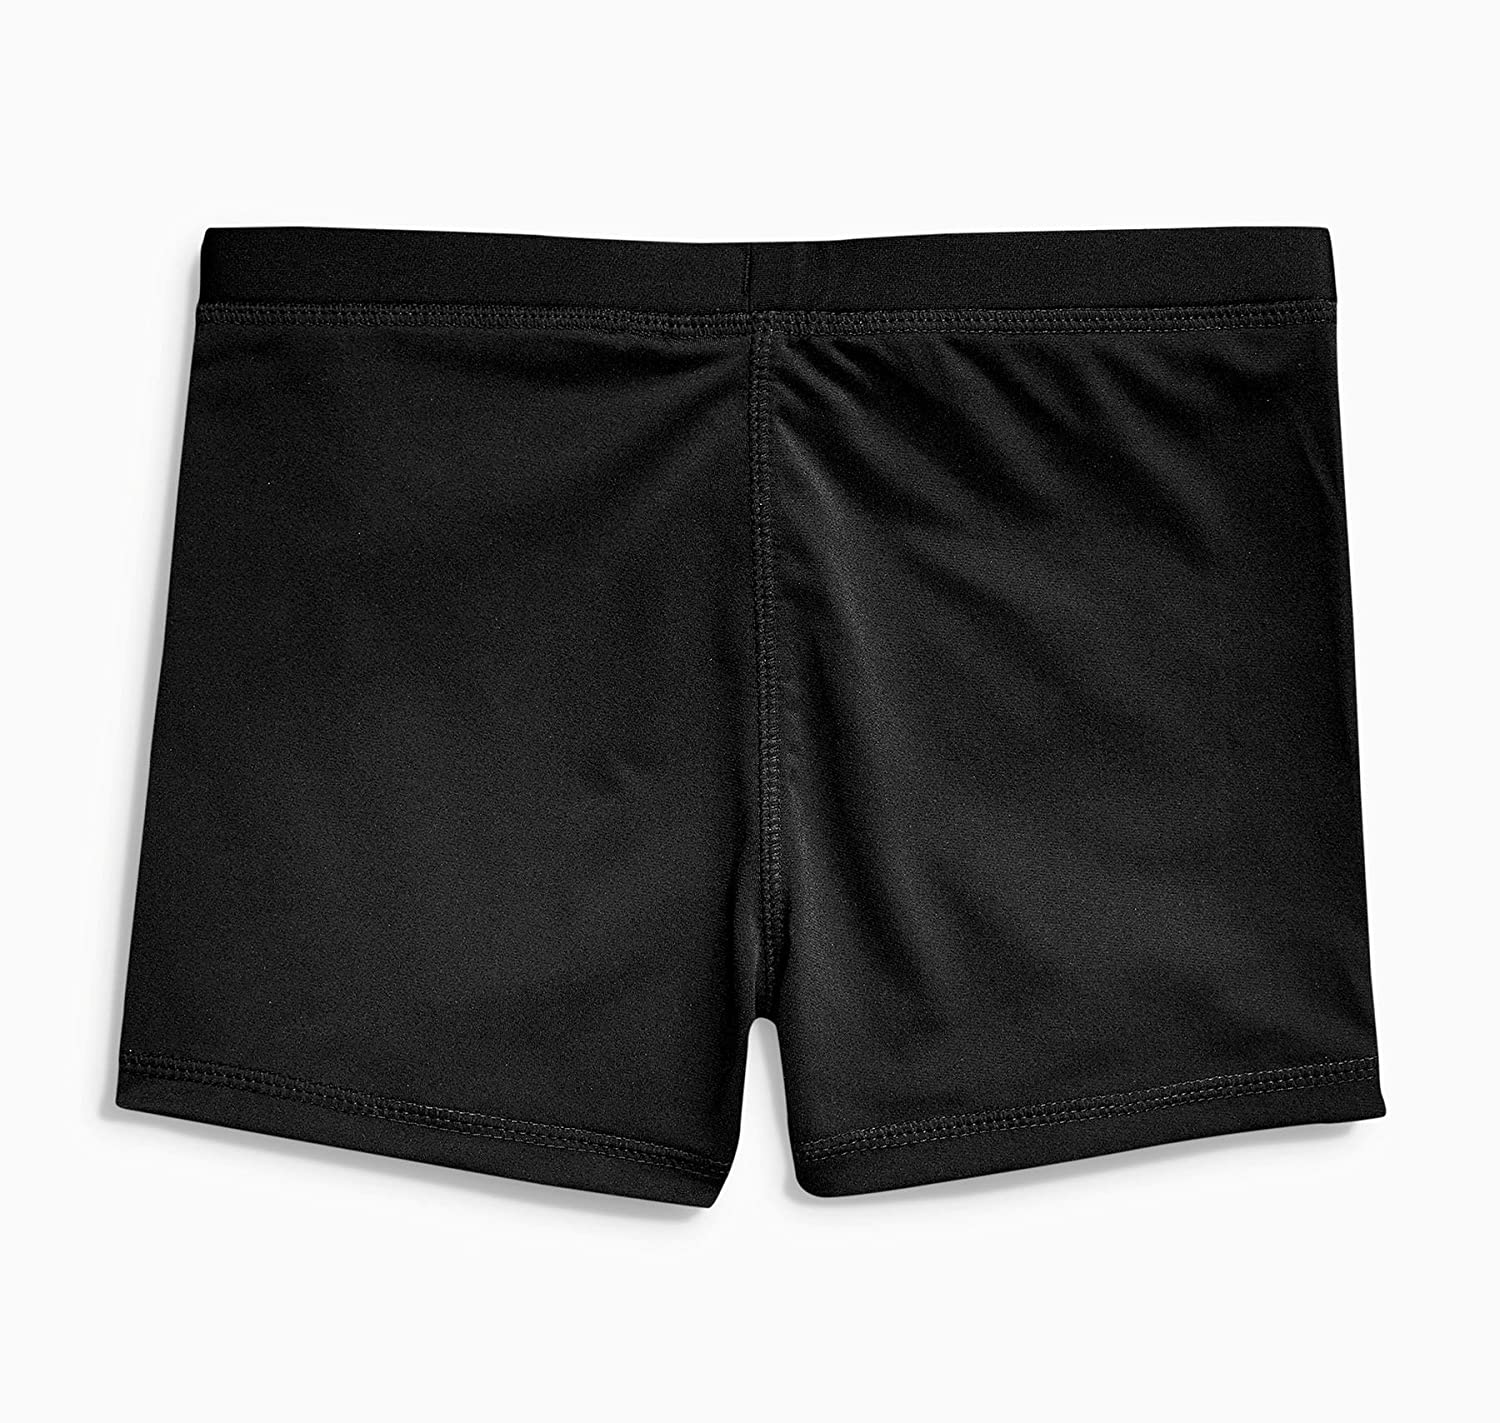 Hollywood Star Fashion Khanomak Kids Girls Boy Shorts Sizes 2T- 12 Yrs